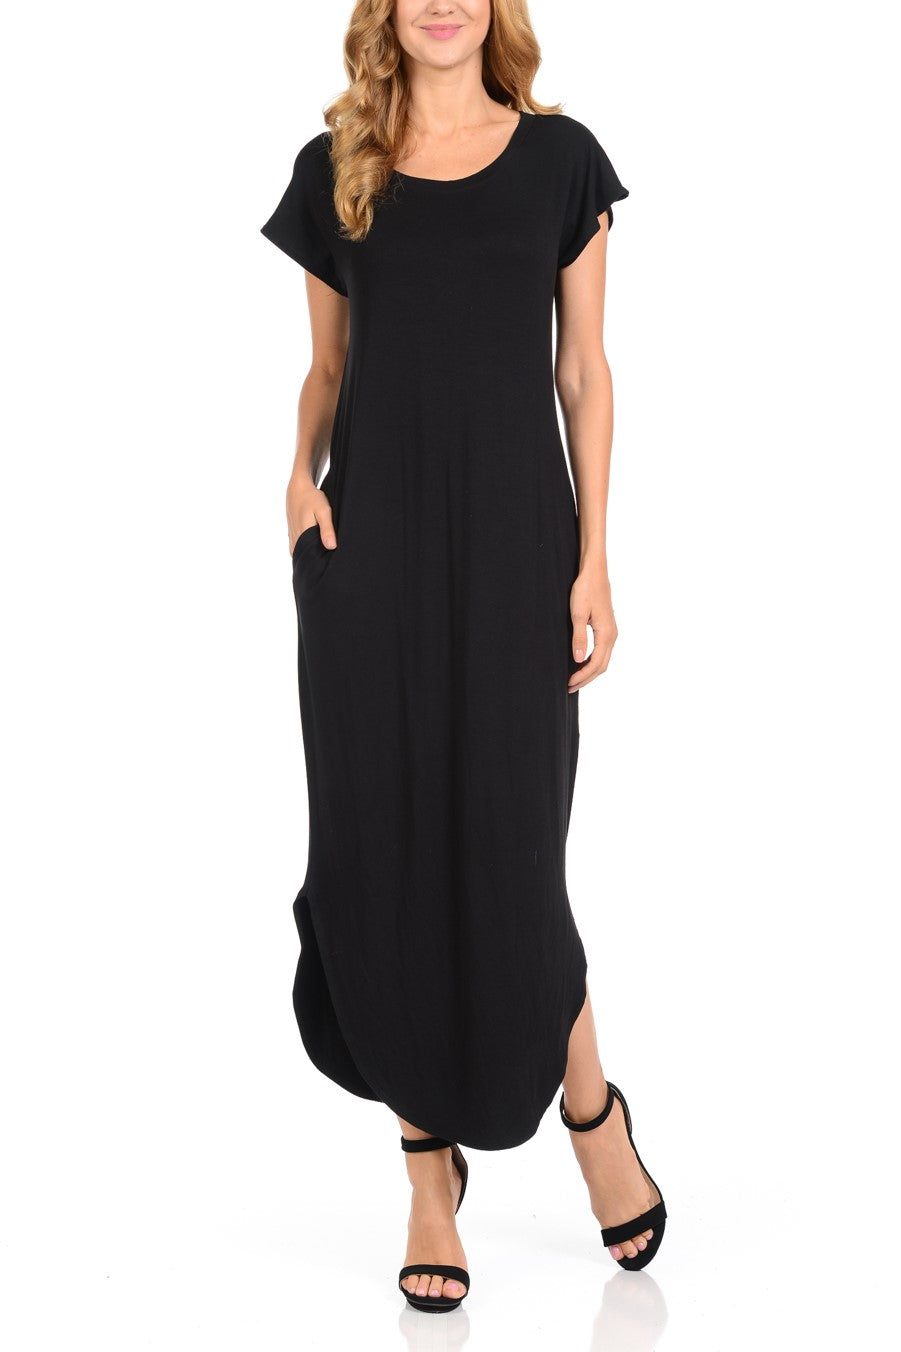 Women Maxi Dress Comfortable with Pockets Round neck Black Long Dresses